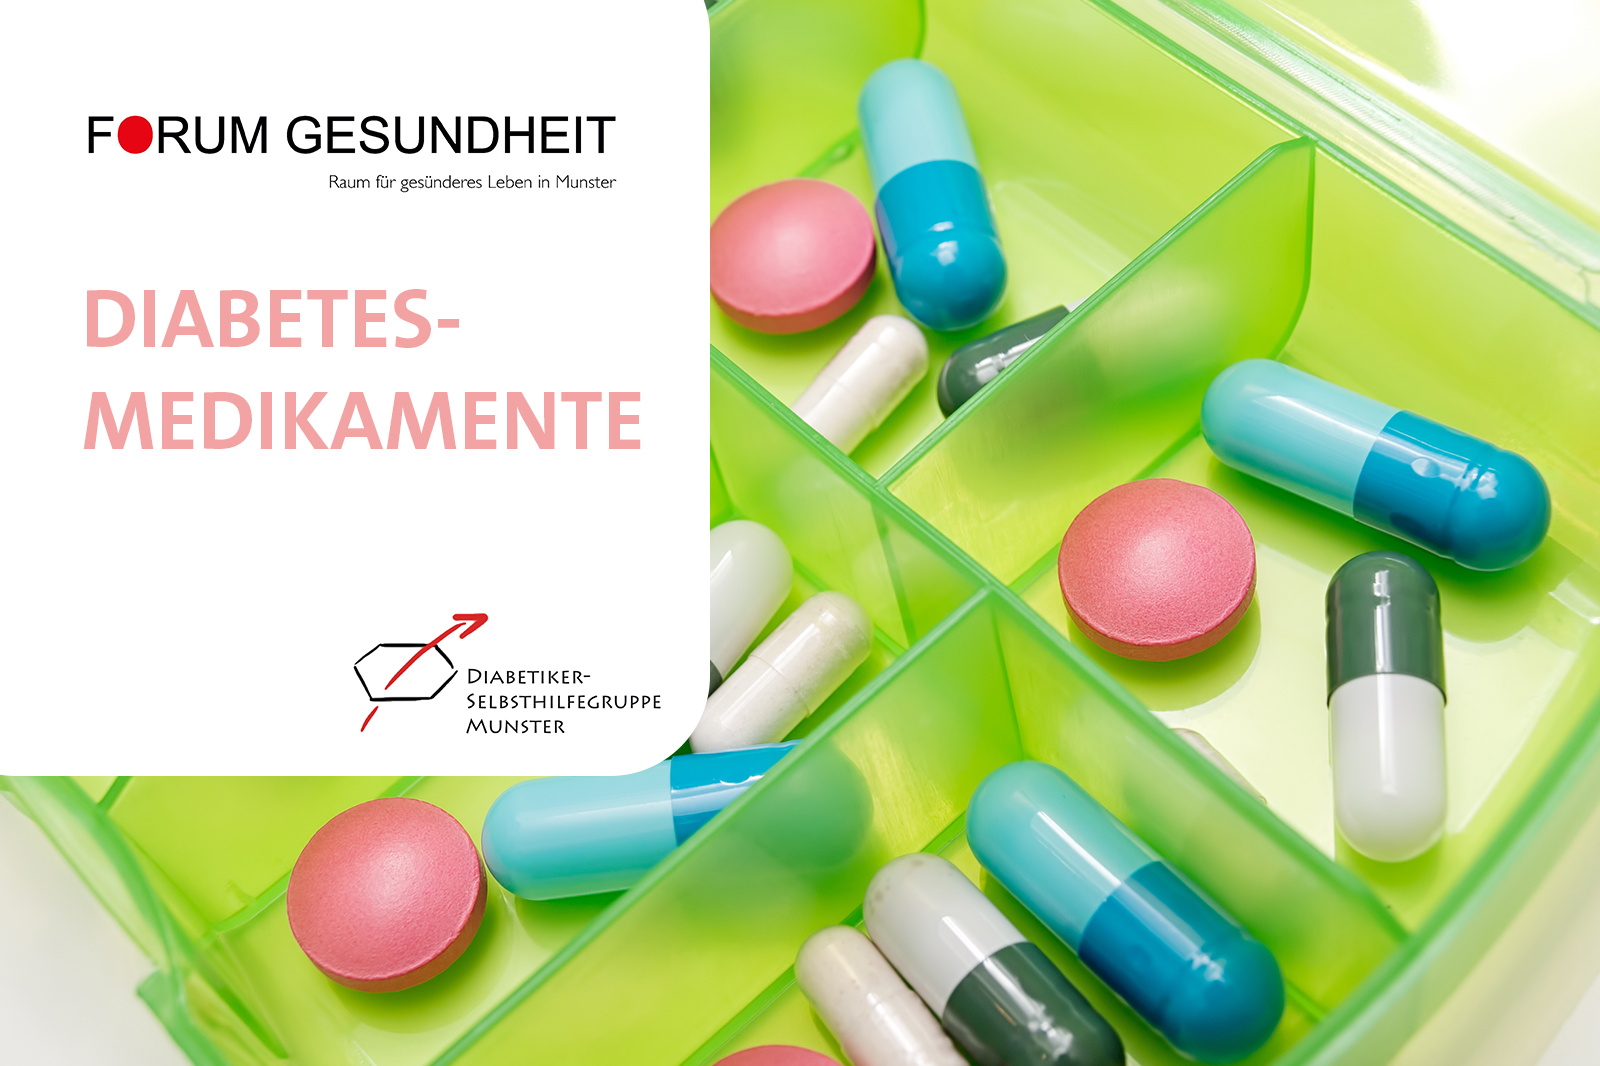 Medikamente bei Diabetes